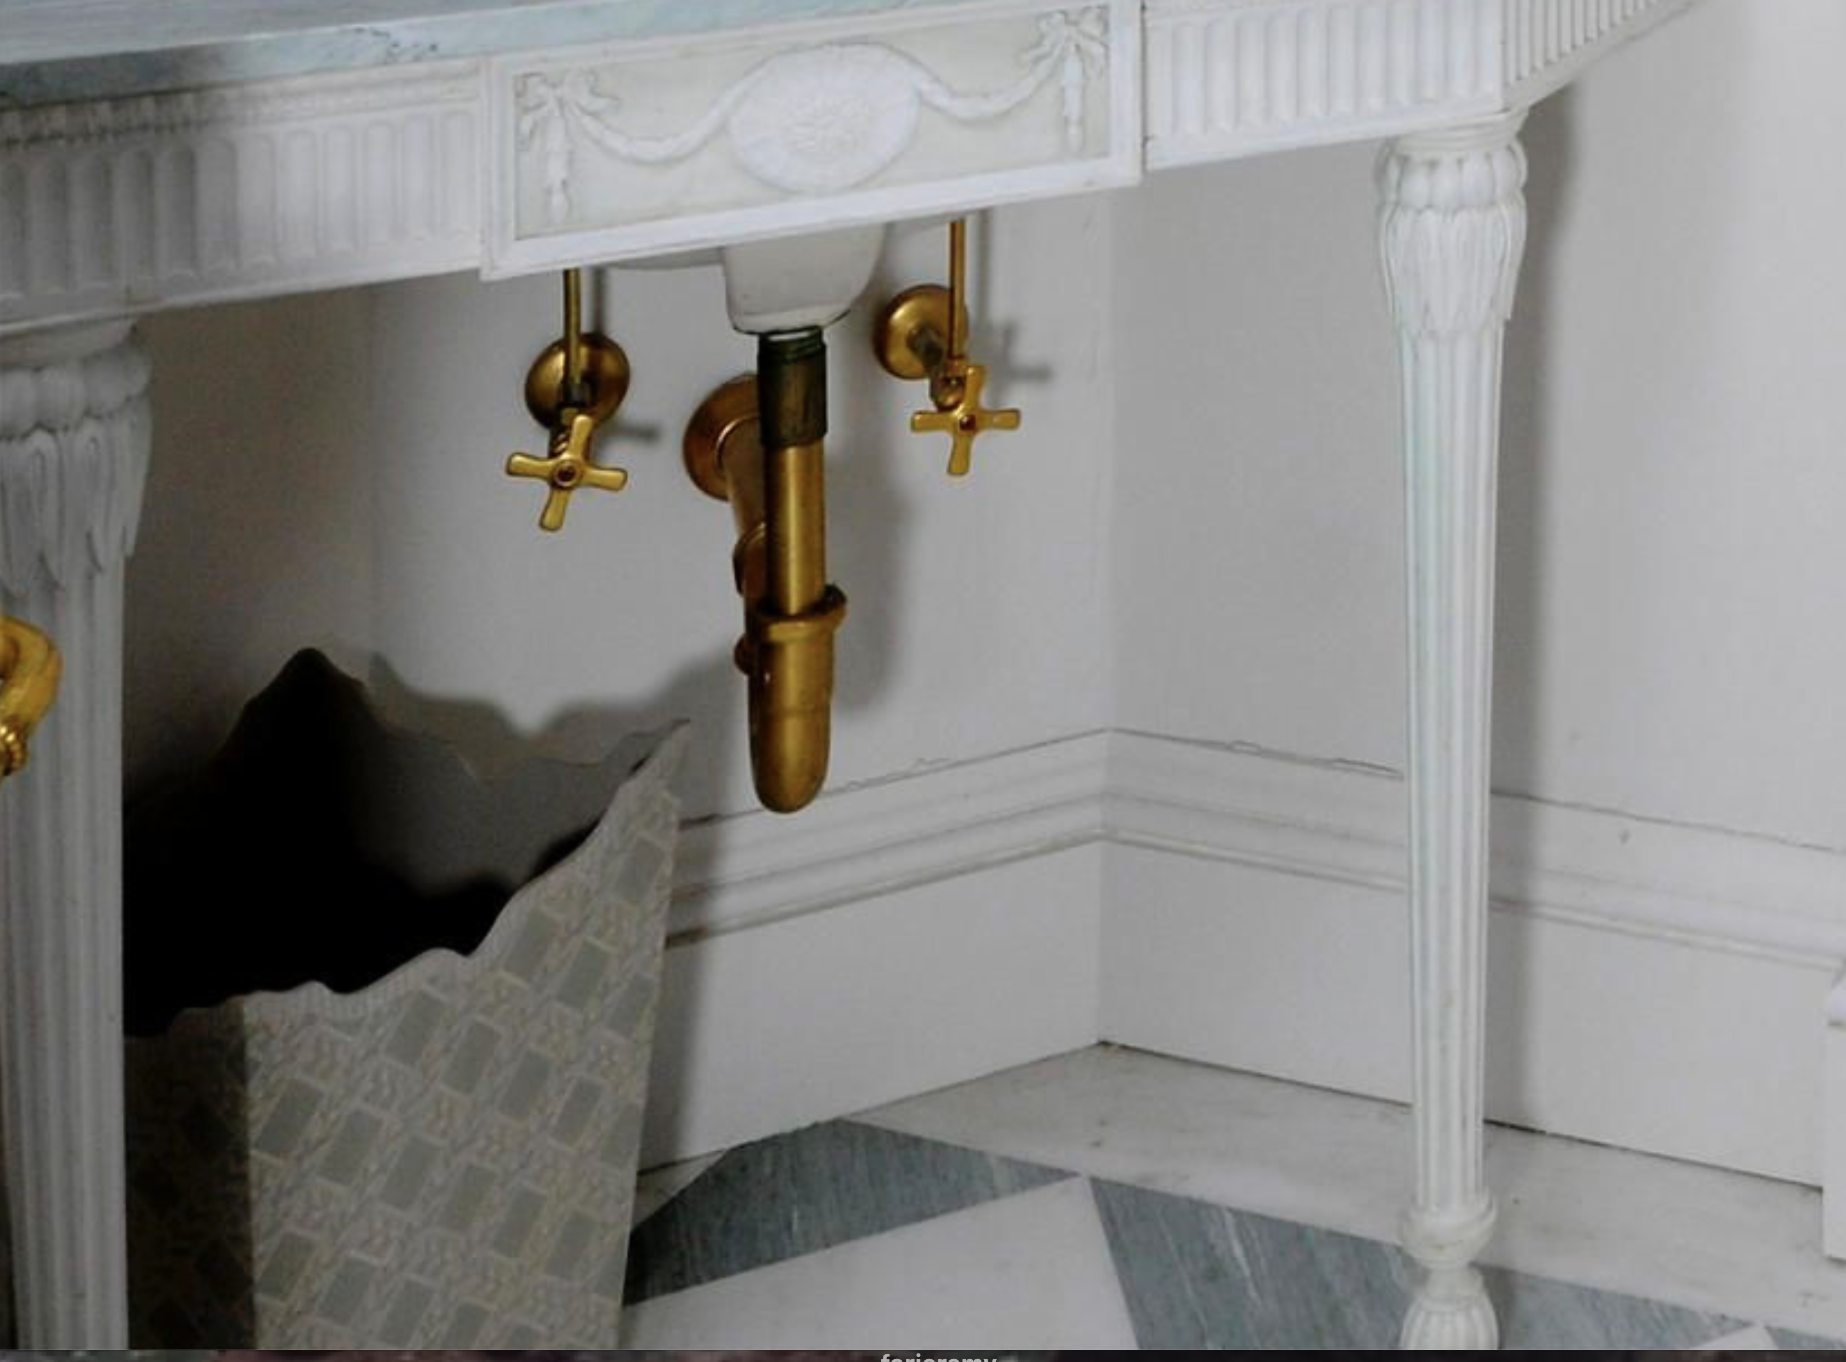 gold-plated sink trap: another contribution by Christopher Smallwood?